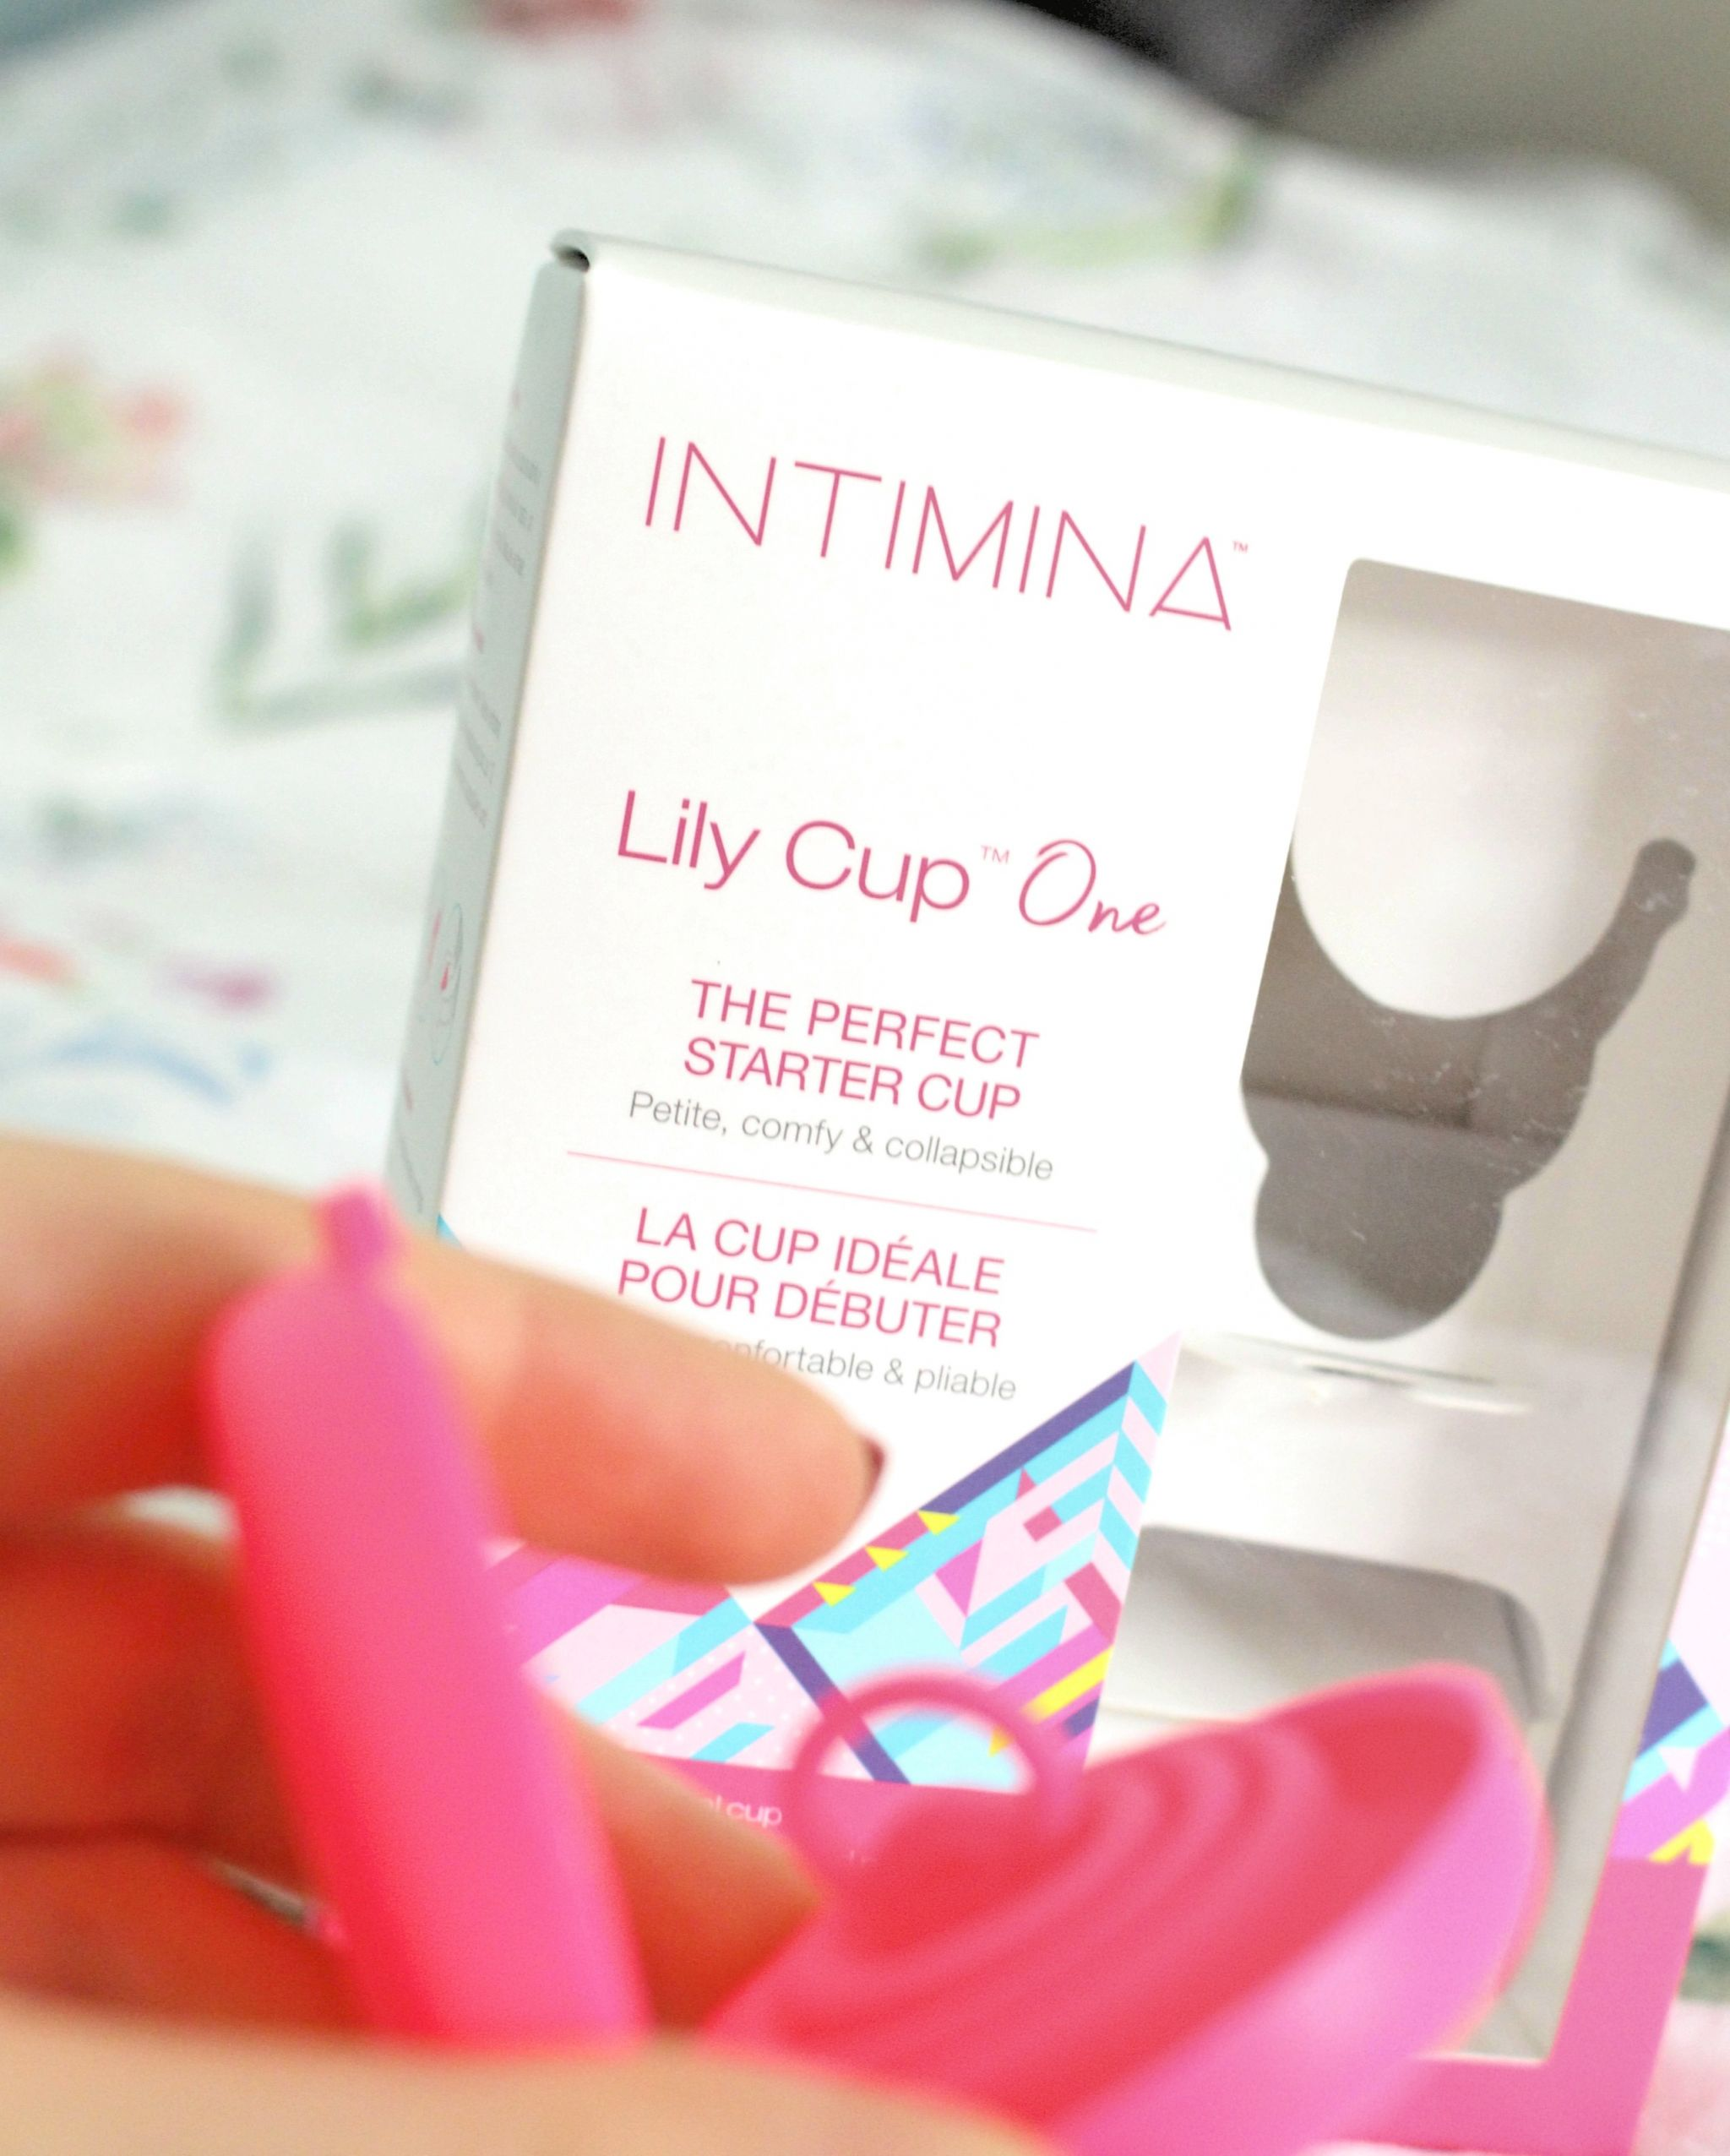 I tried a menstrual cup